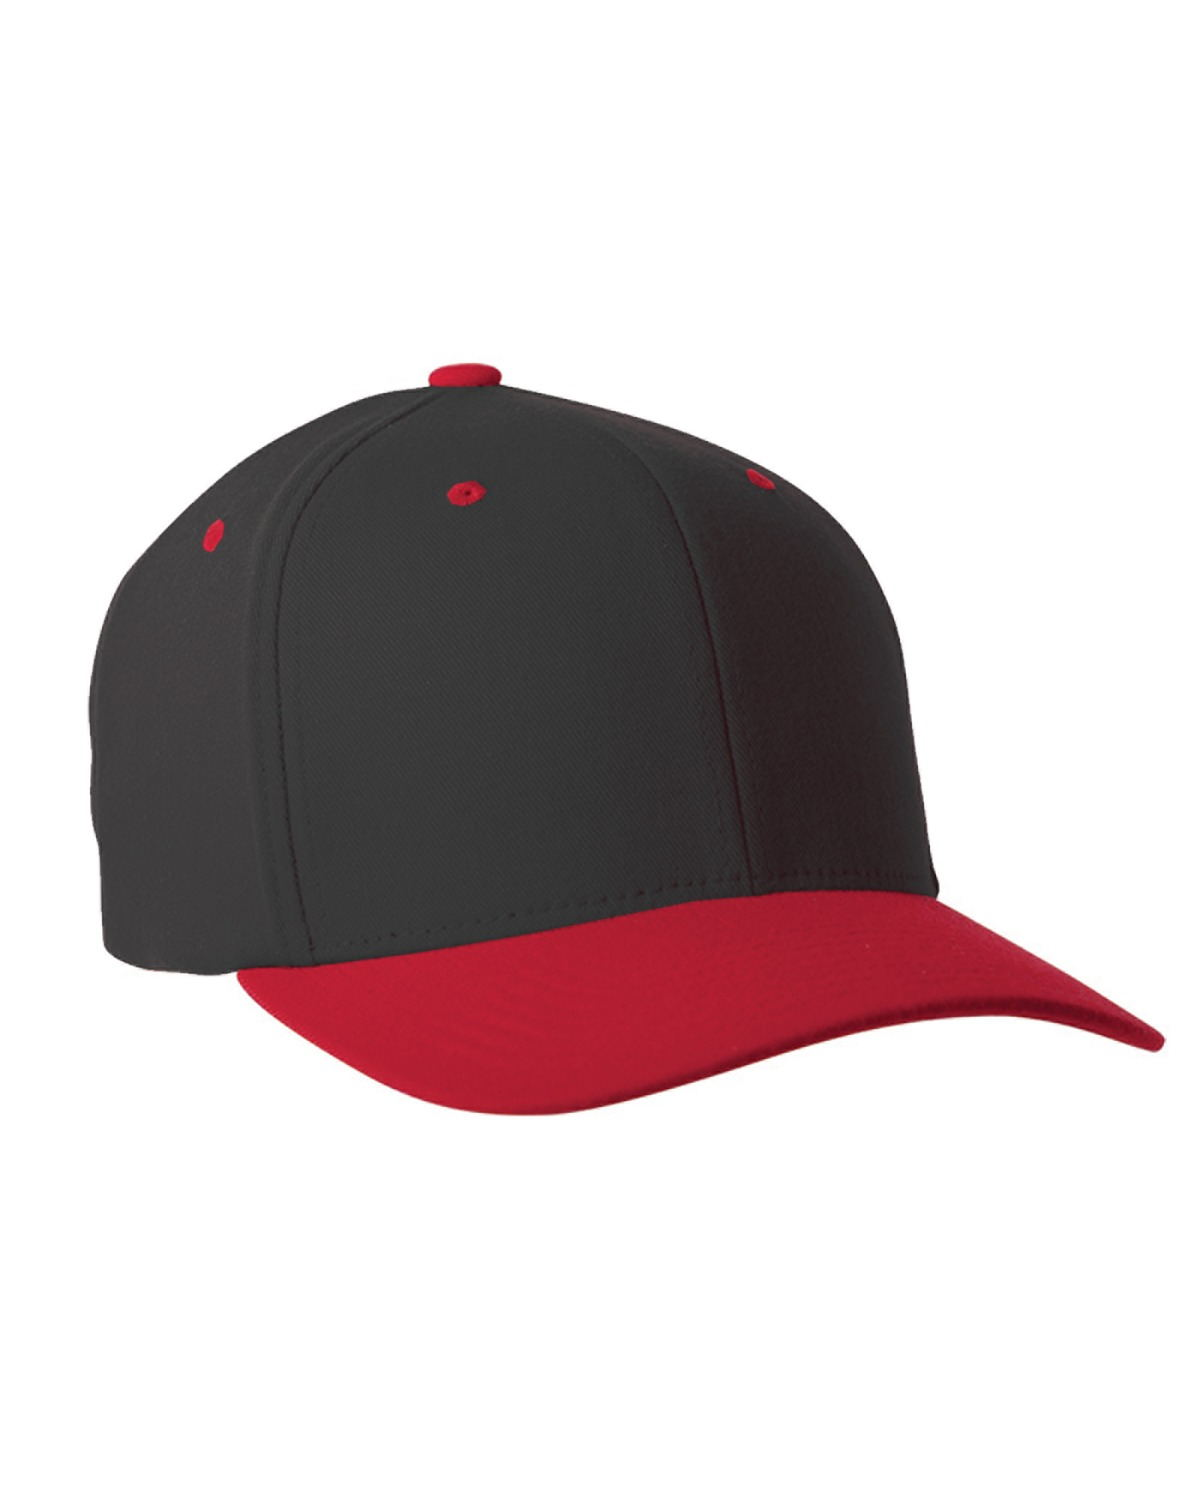 Flexfit 110CT - 110 Performance Serge Two-Tone Cap